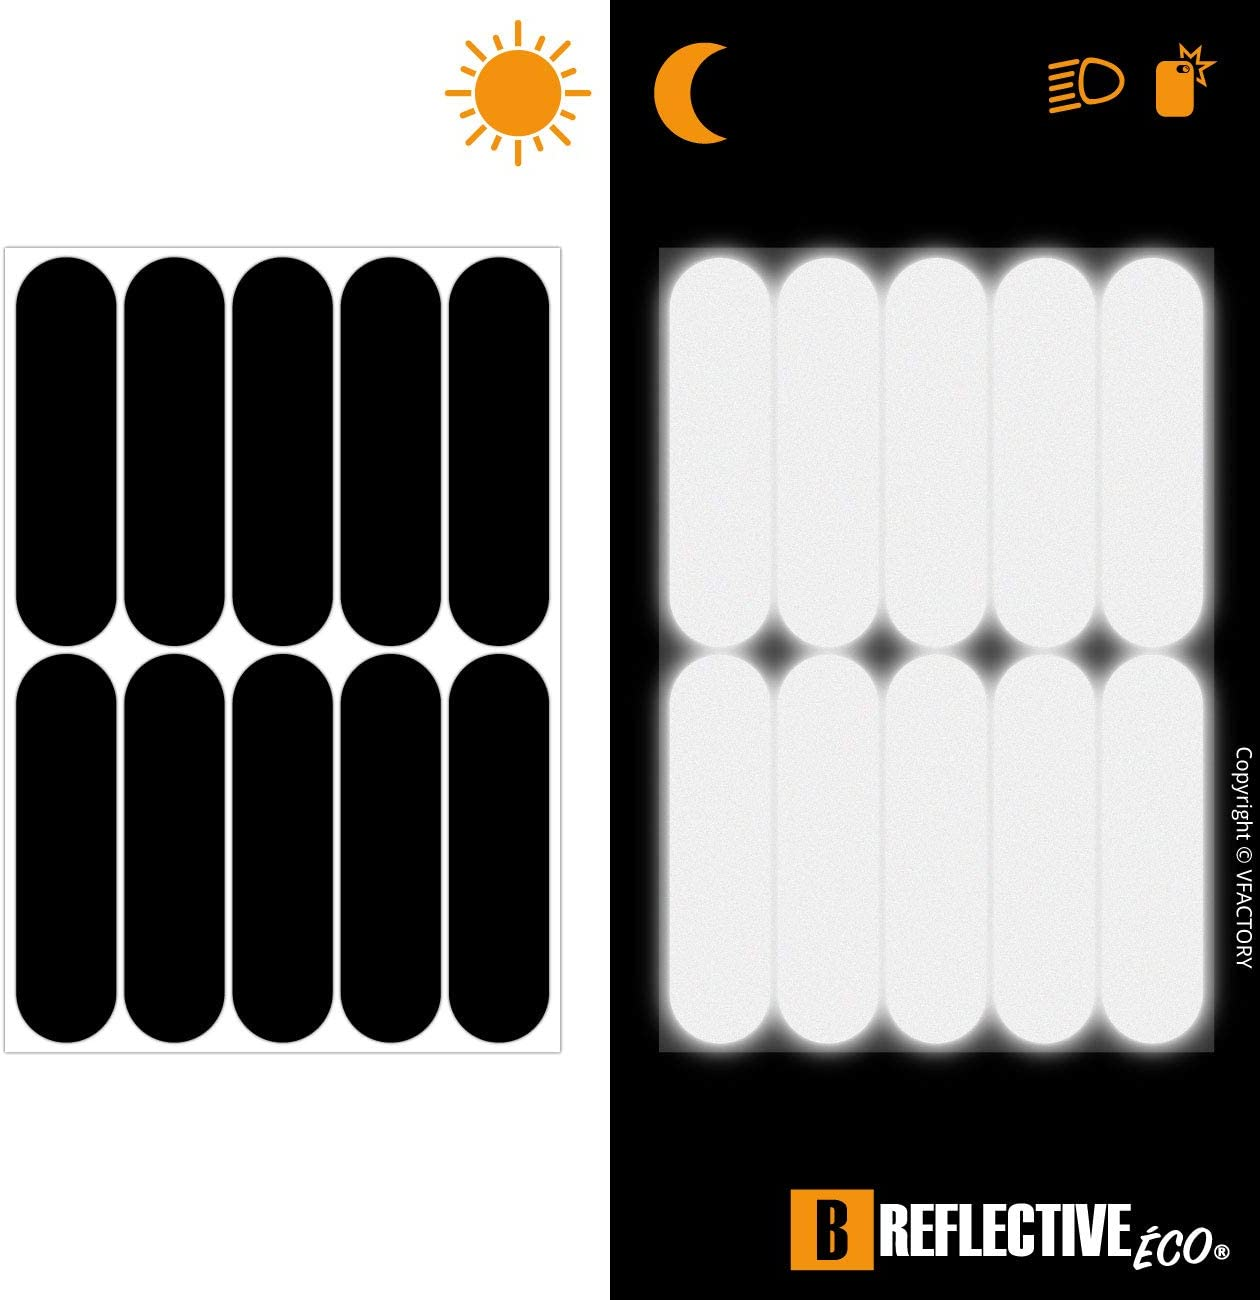 4 Pack Black B REFLECTIVE, 8,5 x 2,3 cm Adhesive for Motorcycle Helmet//Scooter//Bike//Stroller//Buggy//Toys Night visibility safety 4 retro reflective stickers kit